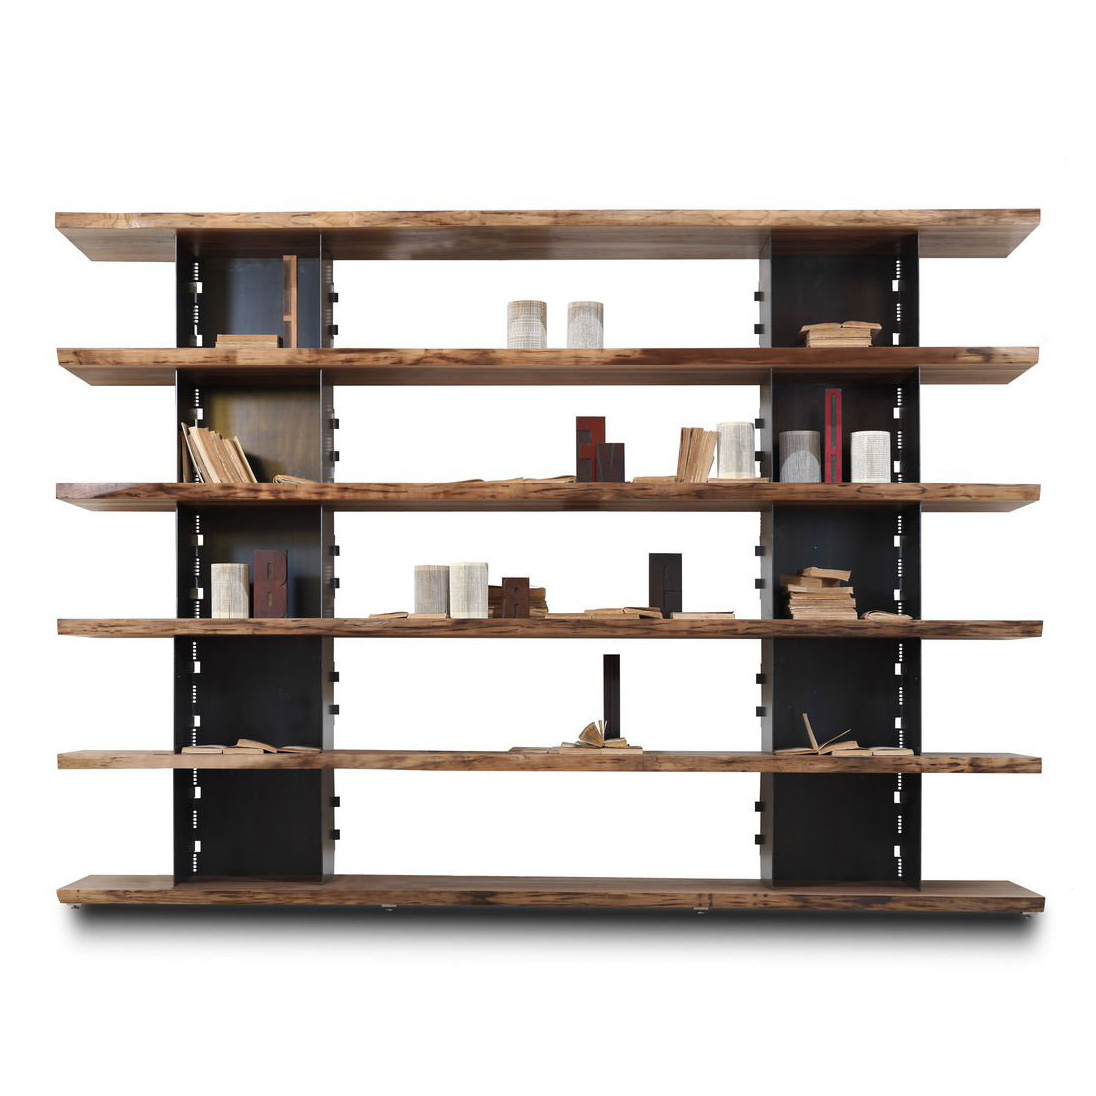 Brie bookcase from Riva 1920, designed by Marc Sadler